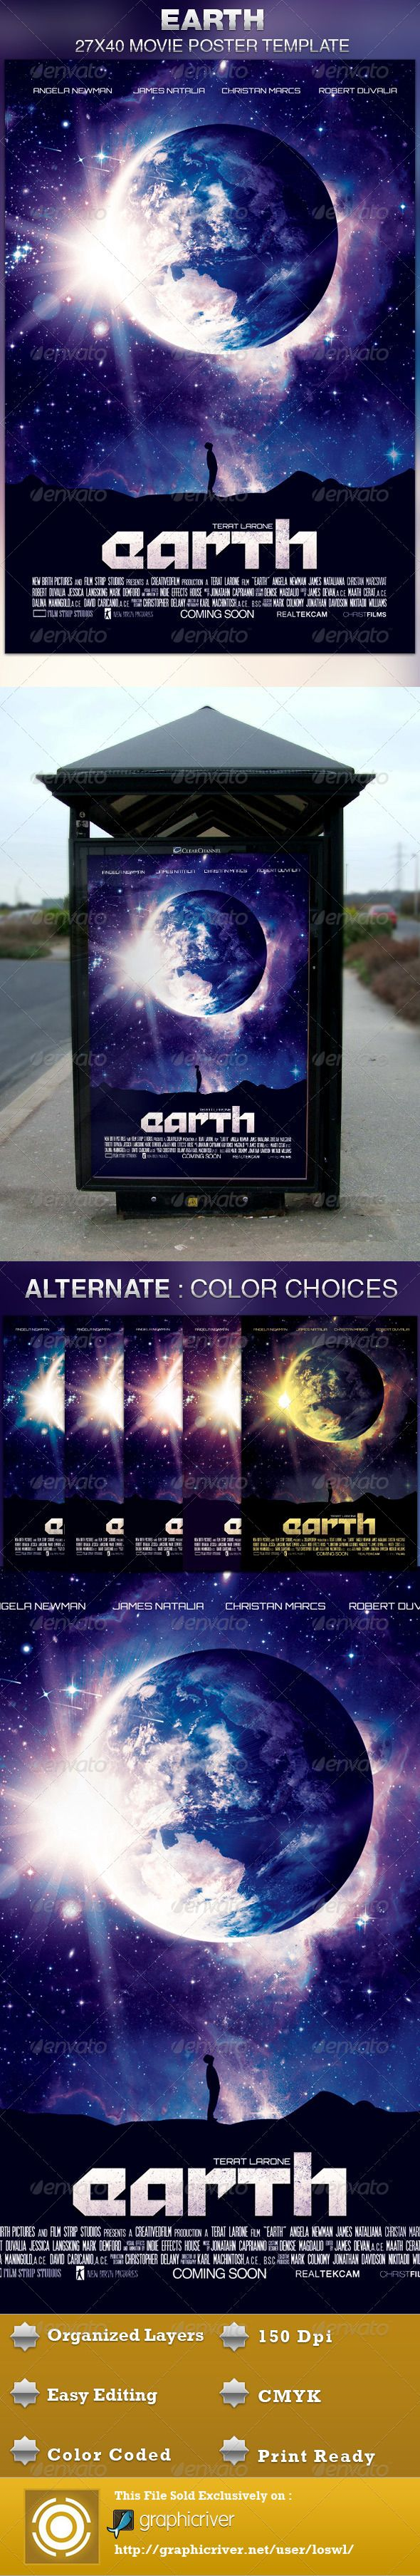 Earth Movie Poster Template — Photoshop PSD #creation #bible • Available here → https://graphicriver.net/item/earth-movie-poster-template/4573630?ref=pxcr